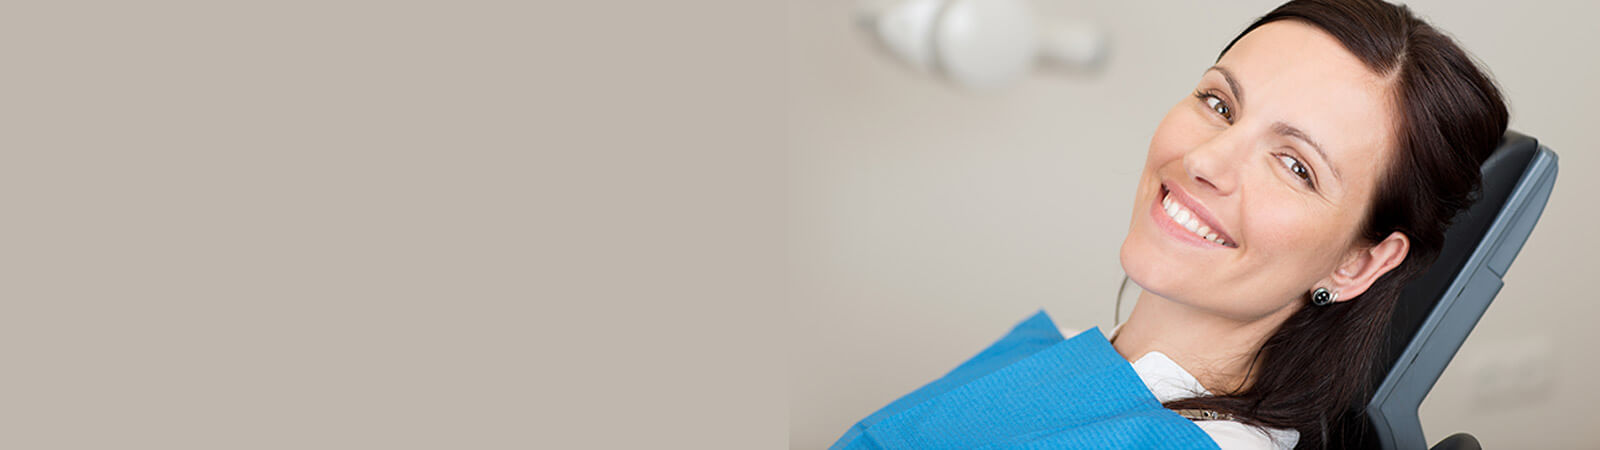 Dentist near me in Atherton, CA provides dental implant treatment for missing teeth